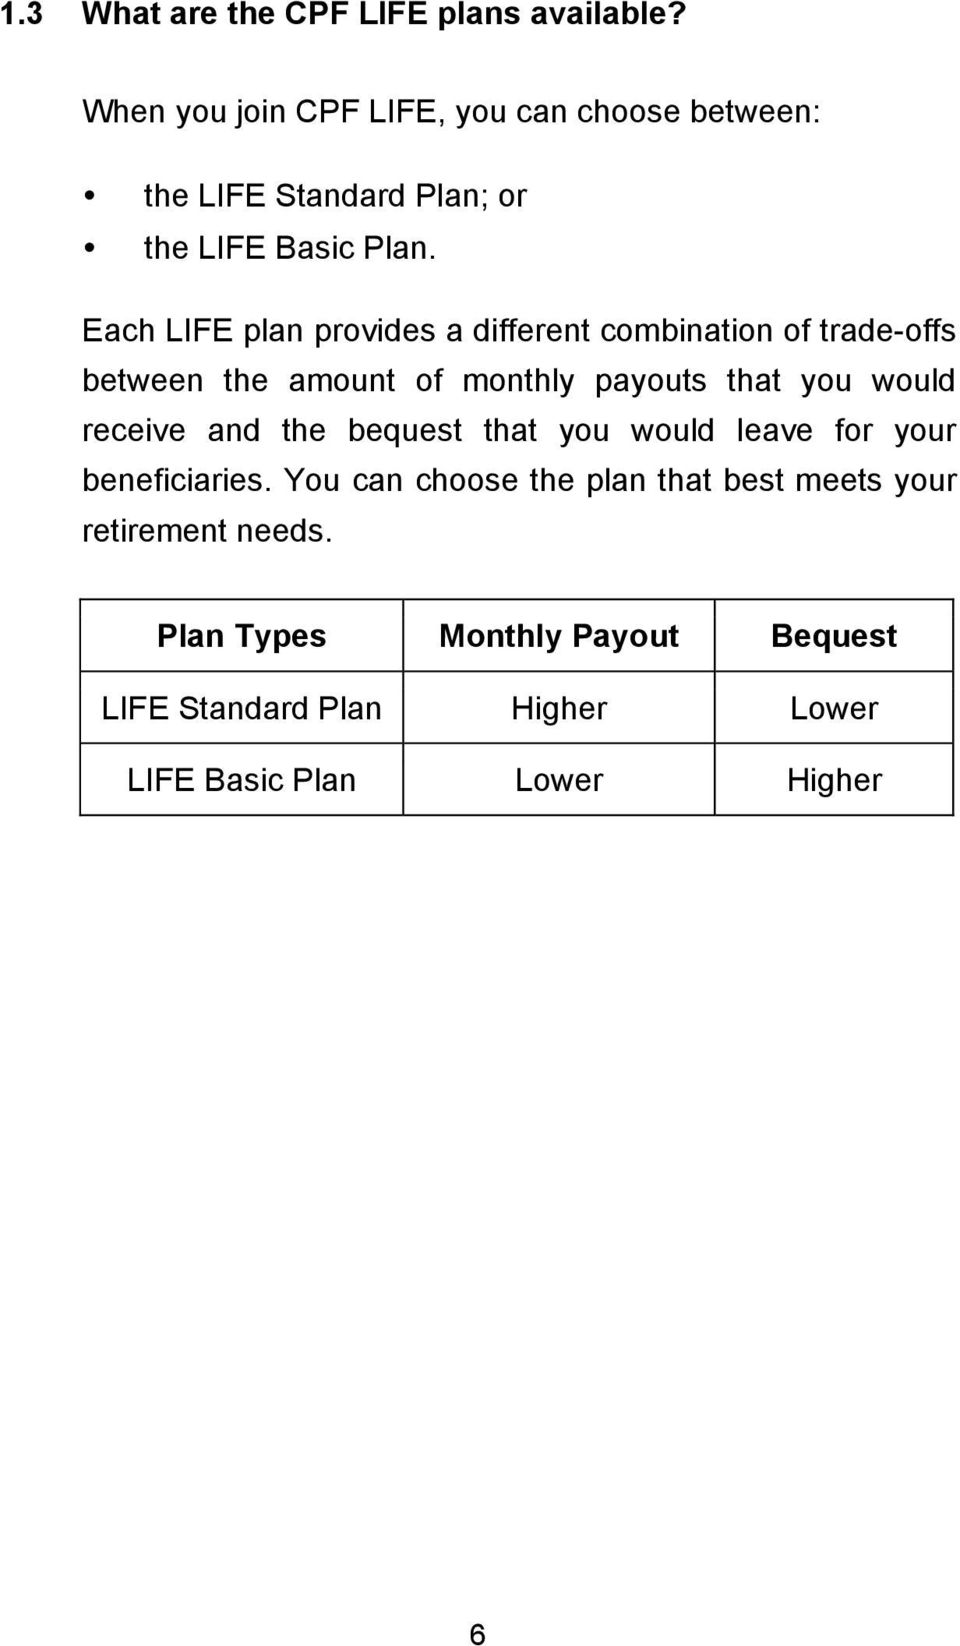 Each LIFE plan provides a different combination of trade-offs between the amount of monthly payouts that you would